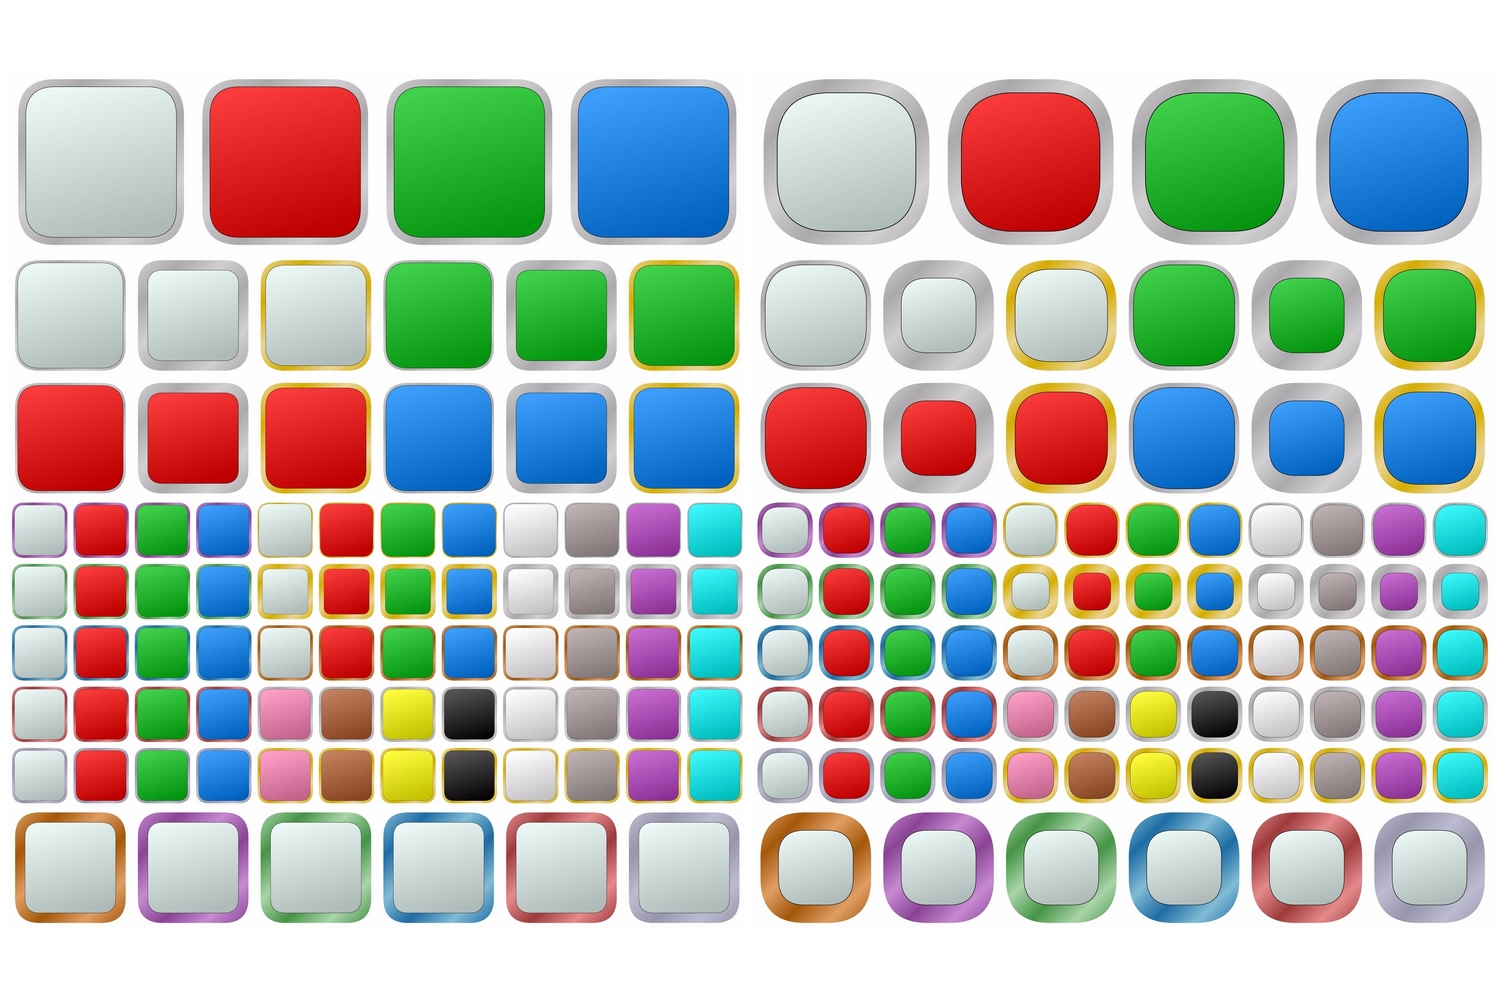 1148 colored geometric metallic buttons (EPS, AI, SVG, JPG 5000x5833) example image 2